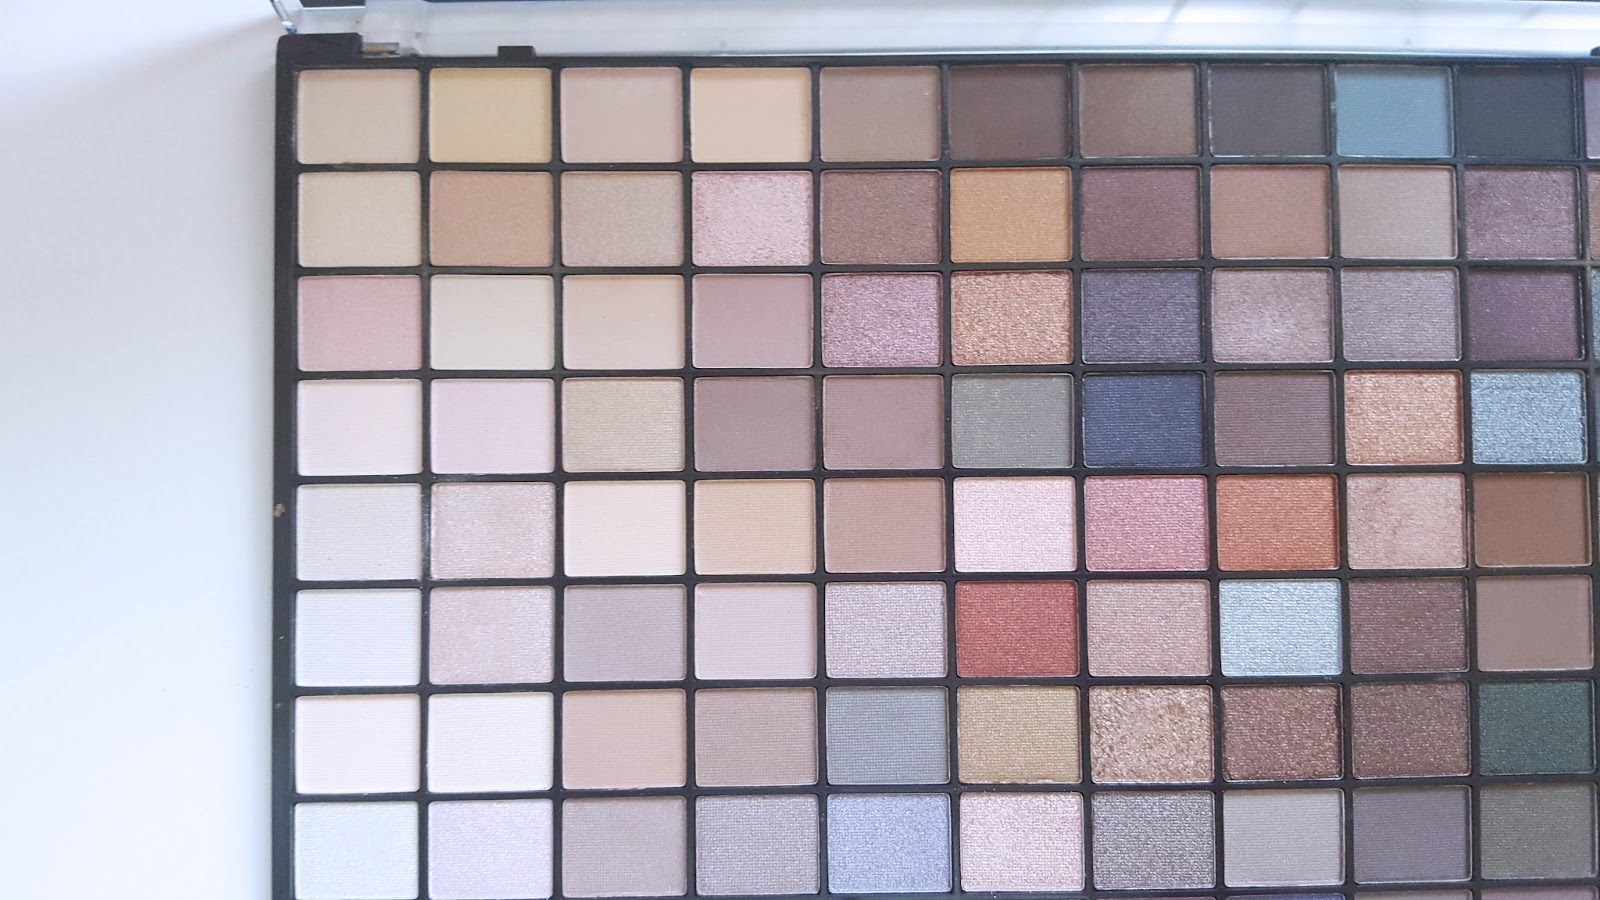 Neutrals Makeup Revolution 2016 Palette